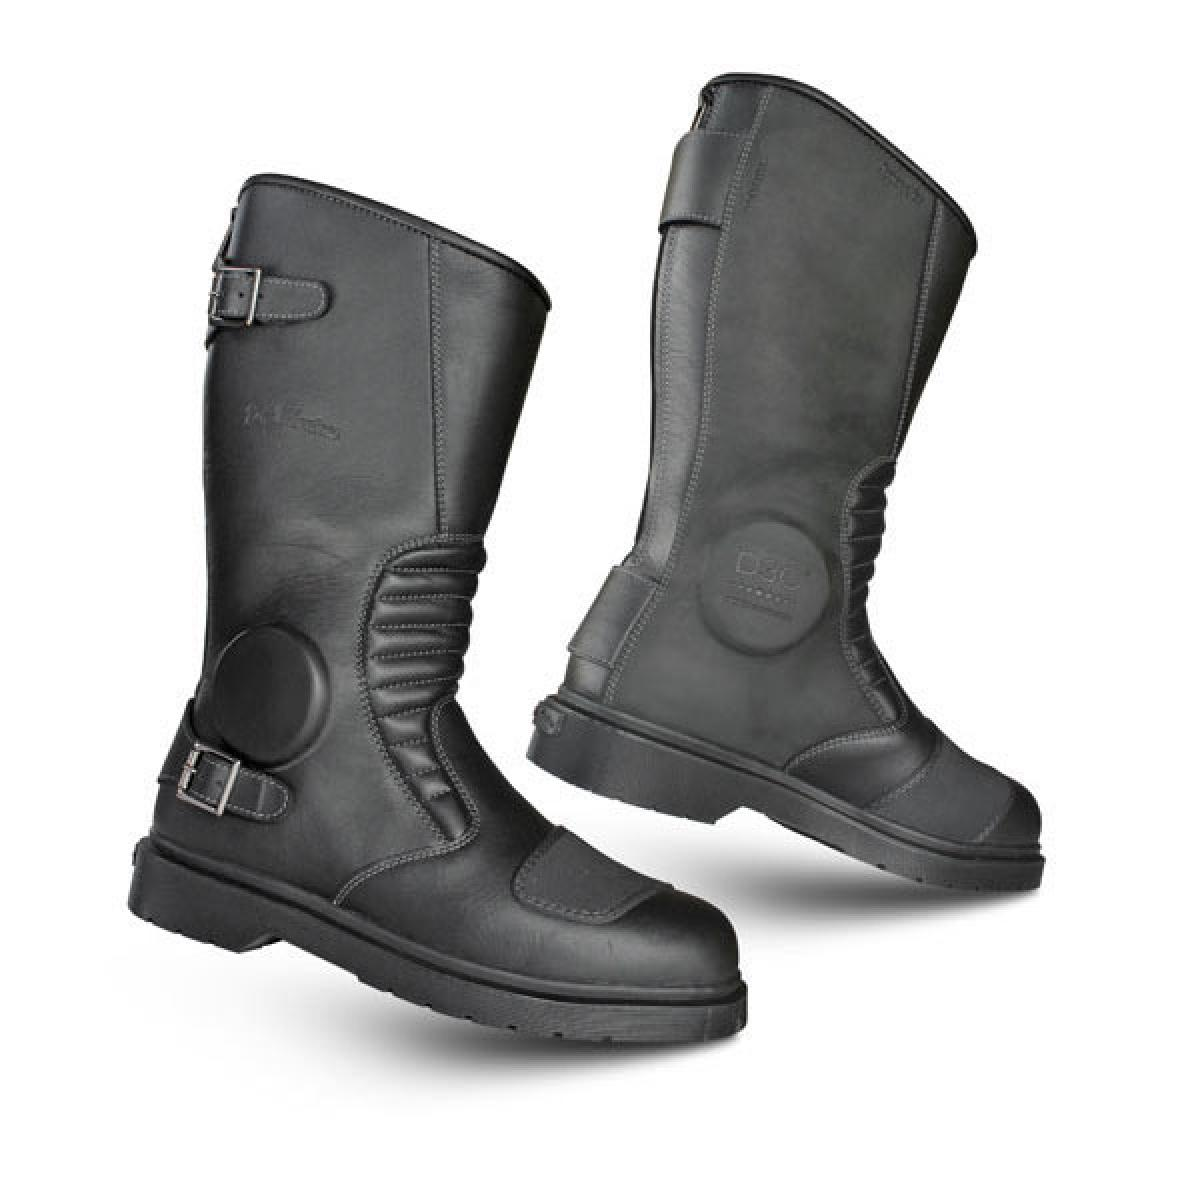 Dr. Martens' new motorcycle boots